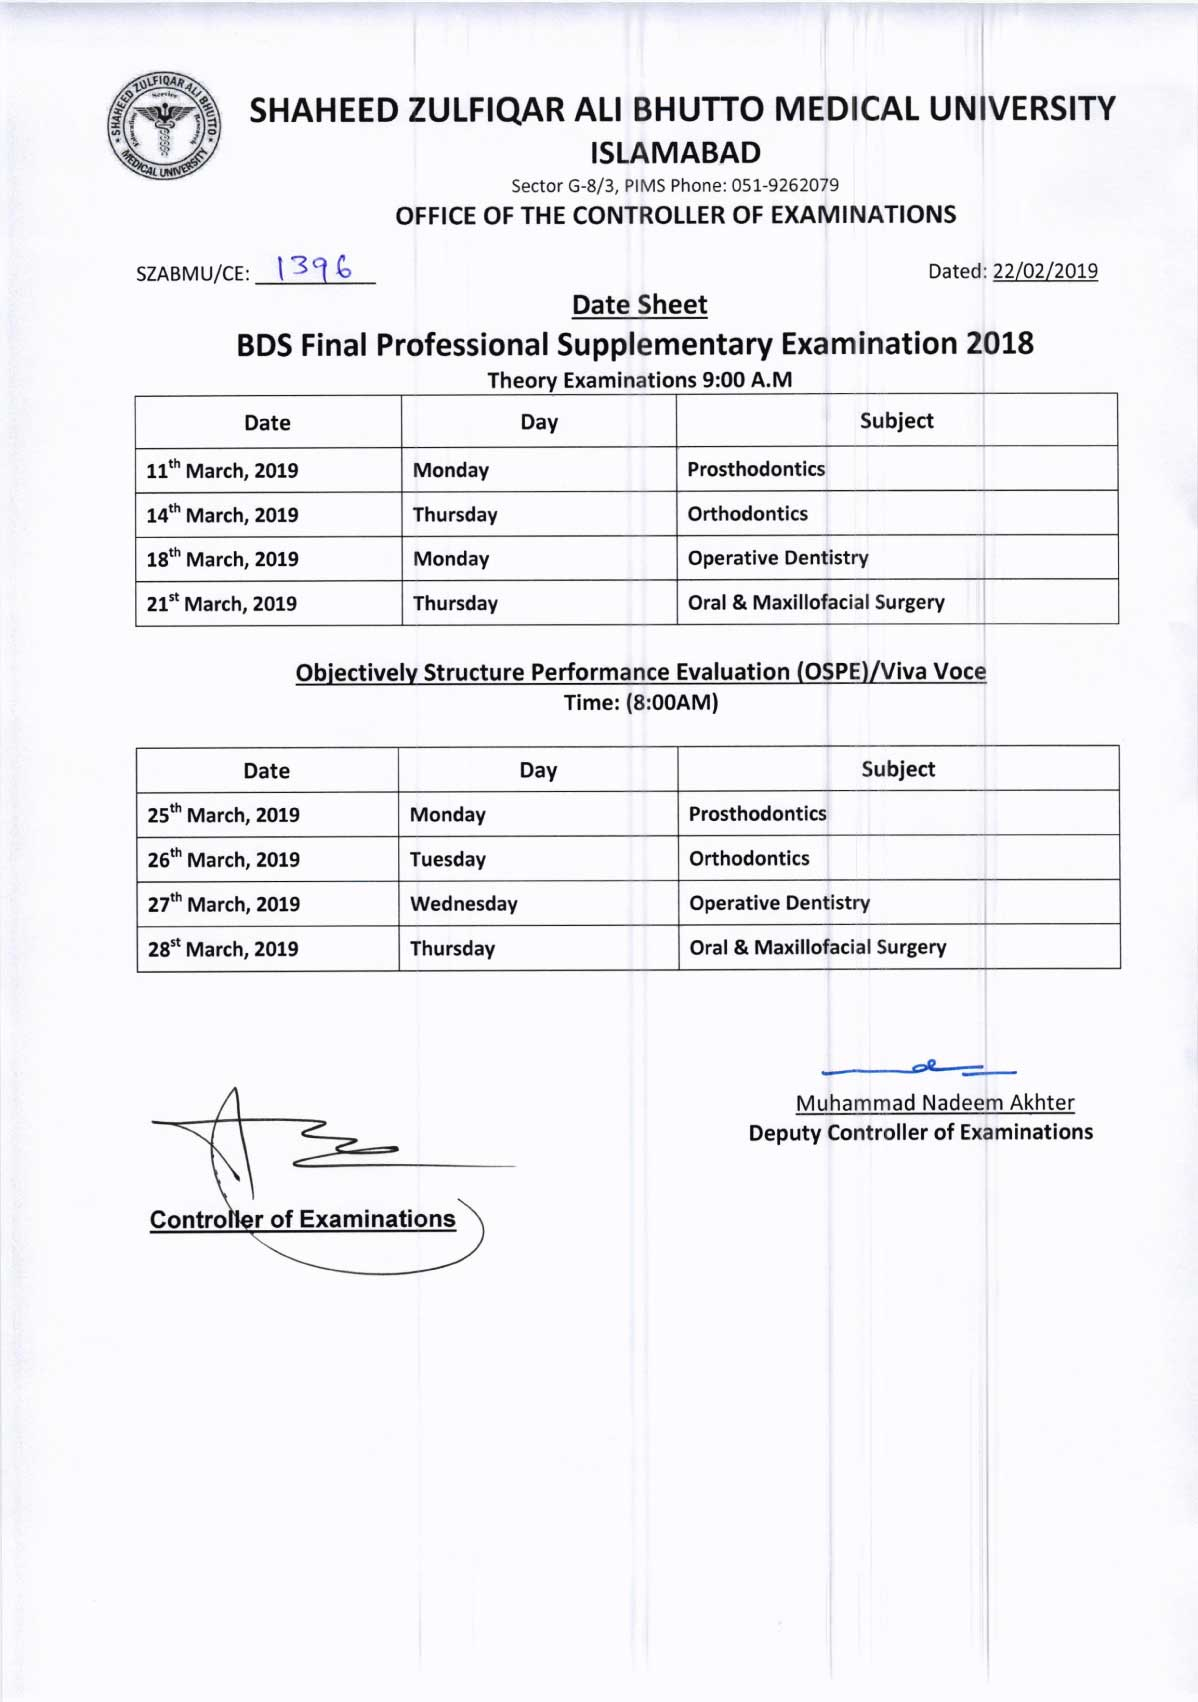 Date Sheets of BDS All Professionals Supplementary Exam 2018